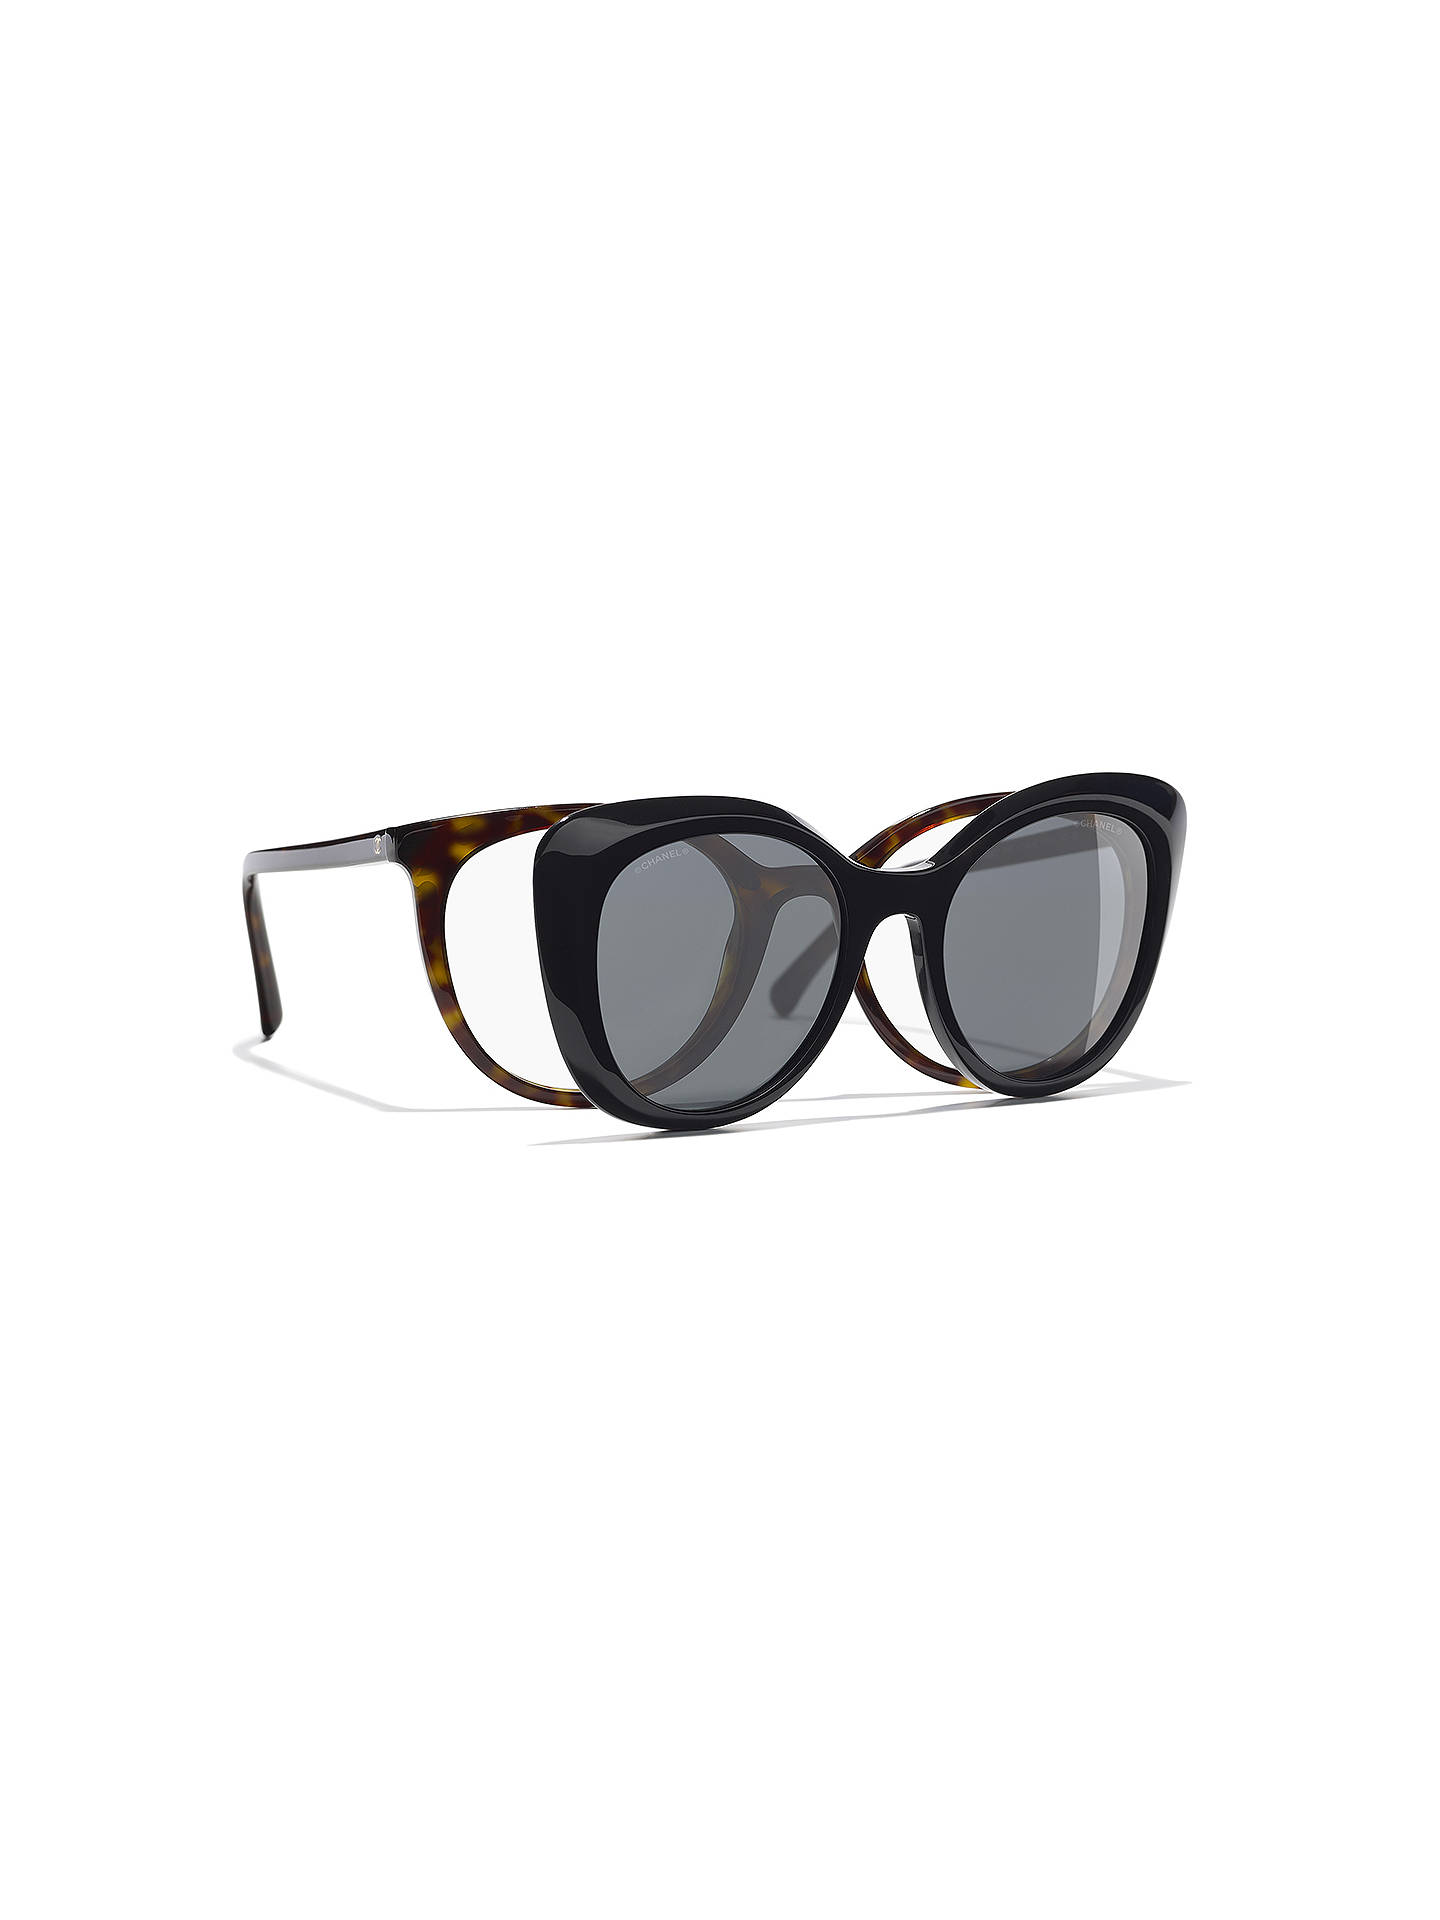 0e98d0c6e6a Buy CHANEL Clip On Sunglasses CH5390H Tortoise Online at johnlewis.com ...